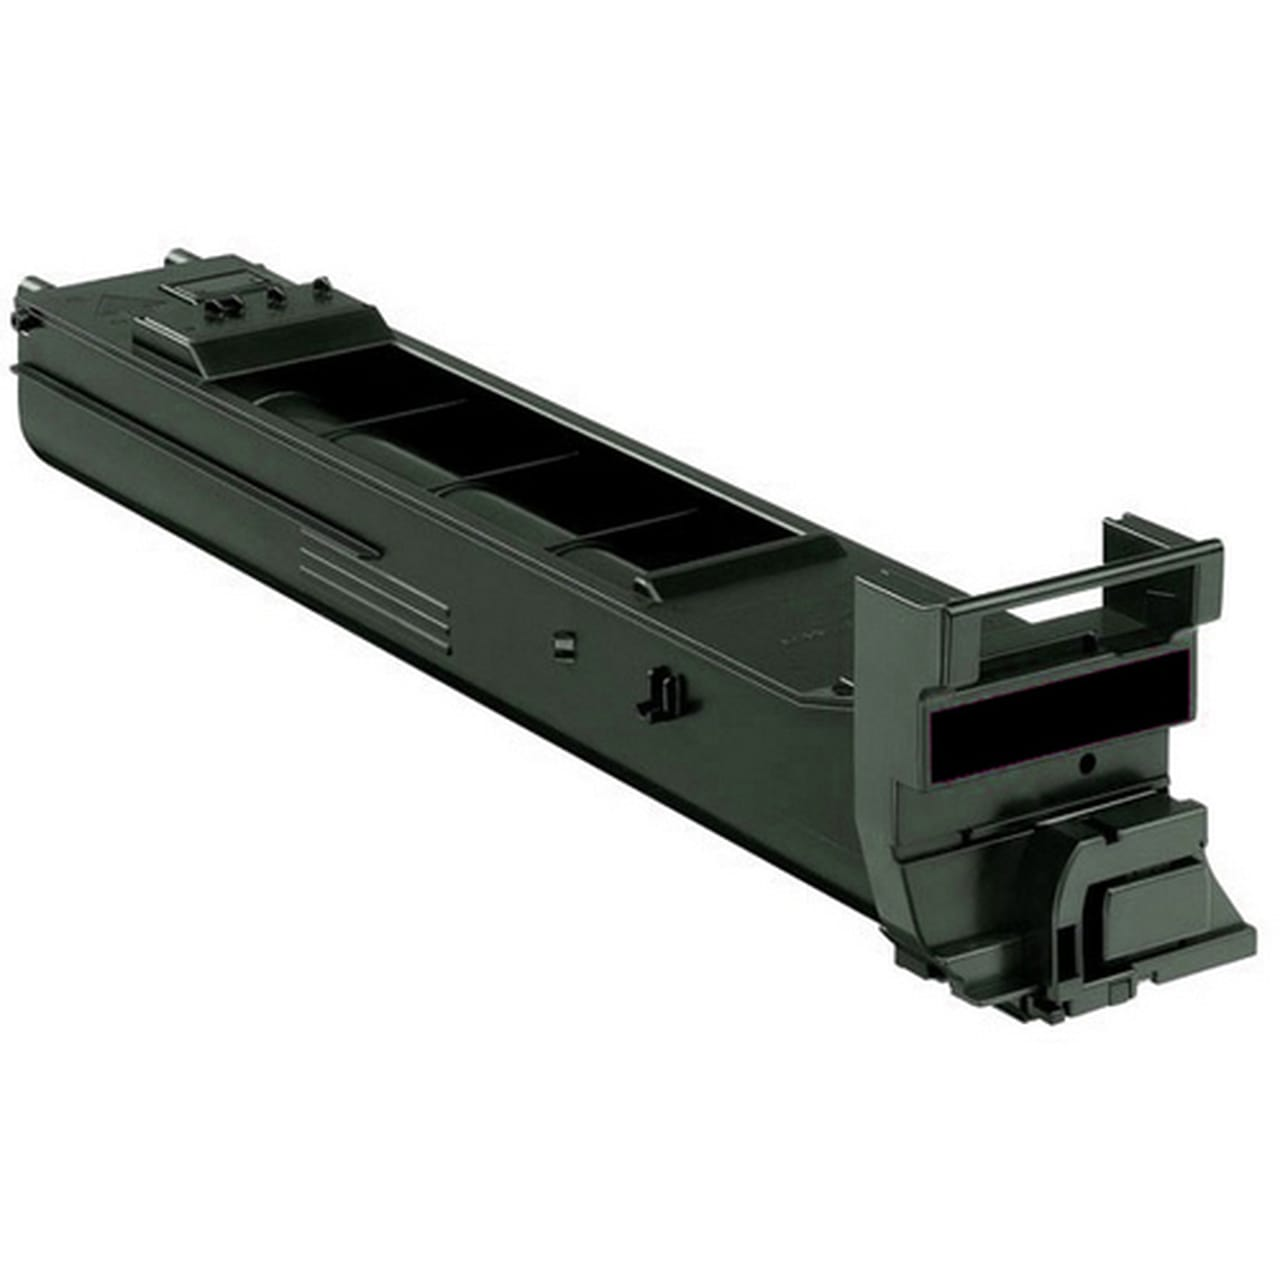 MX-C40NTB Toner Cartridge - Sharp Compatible (Black)